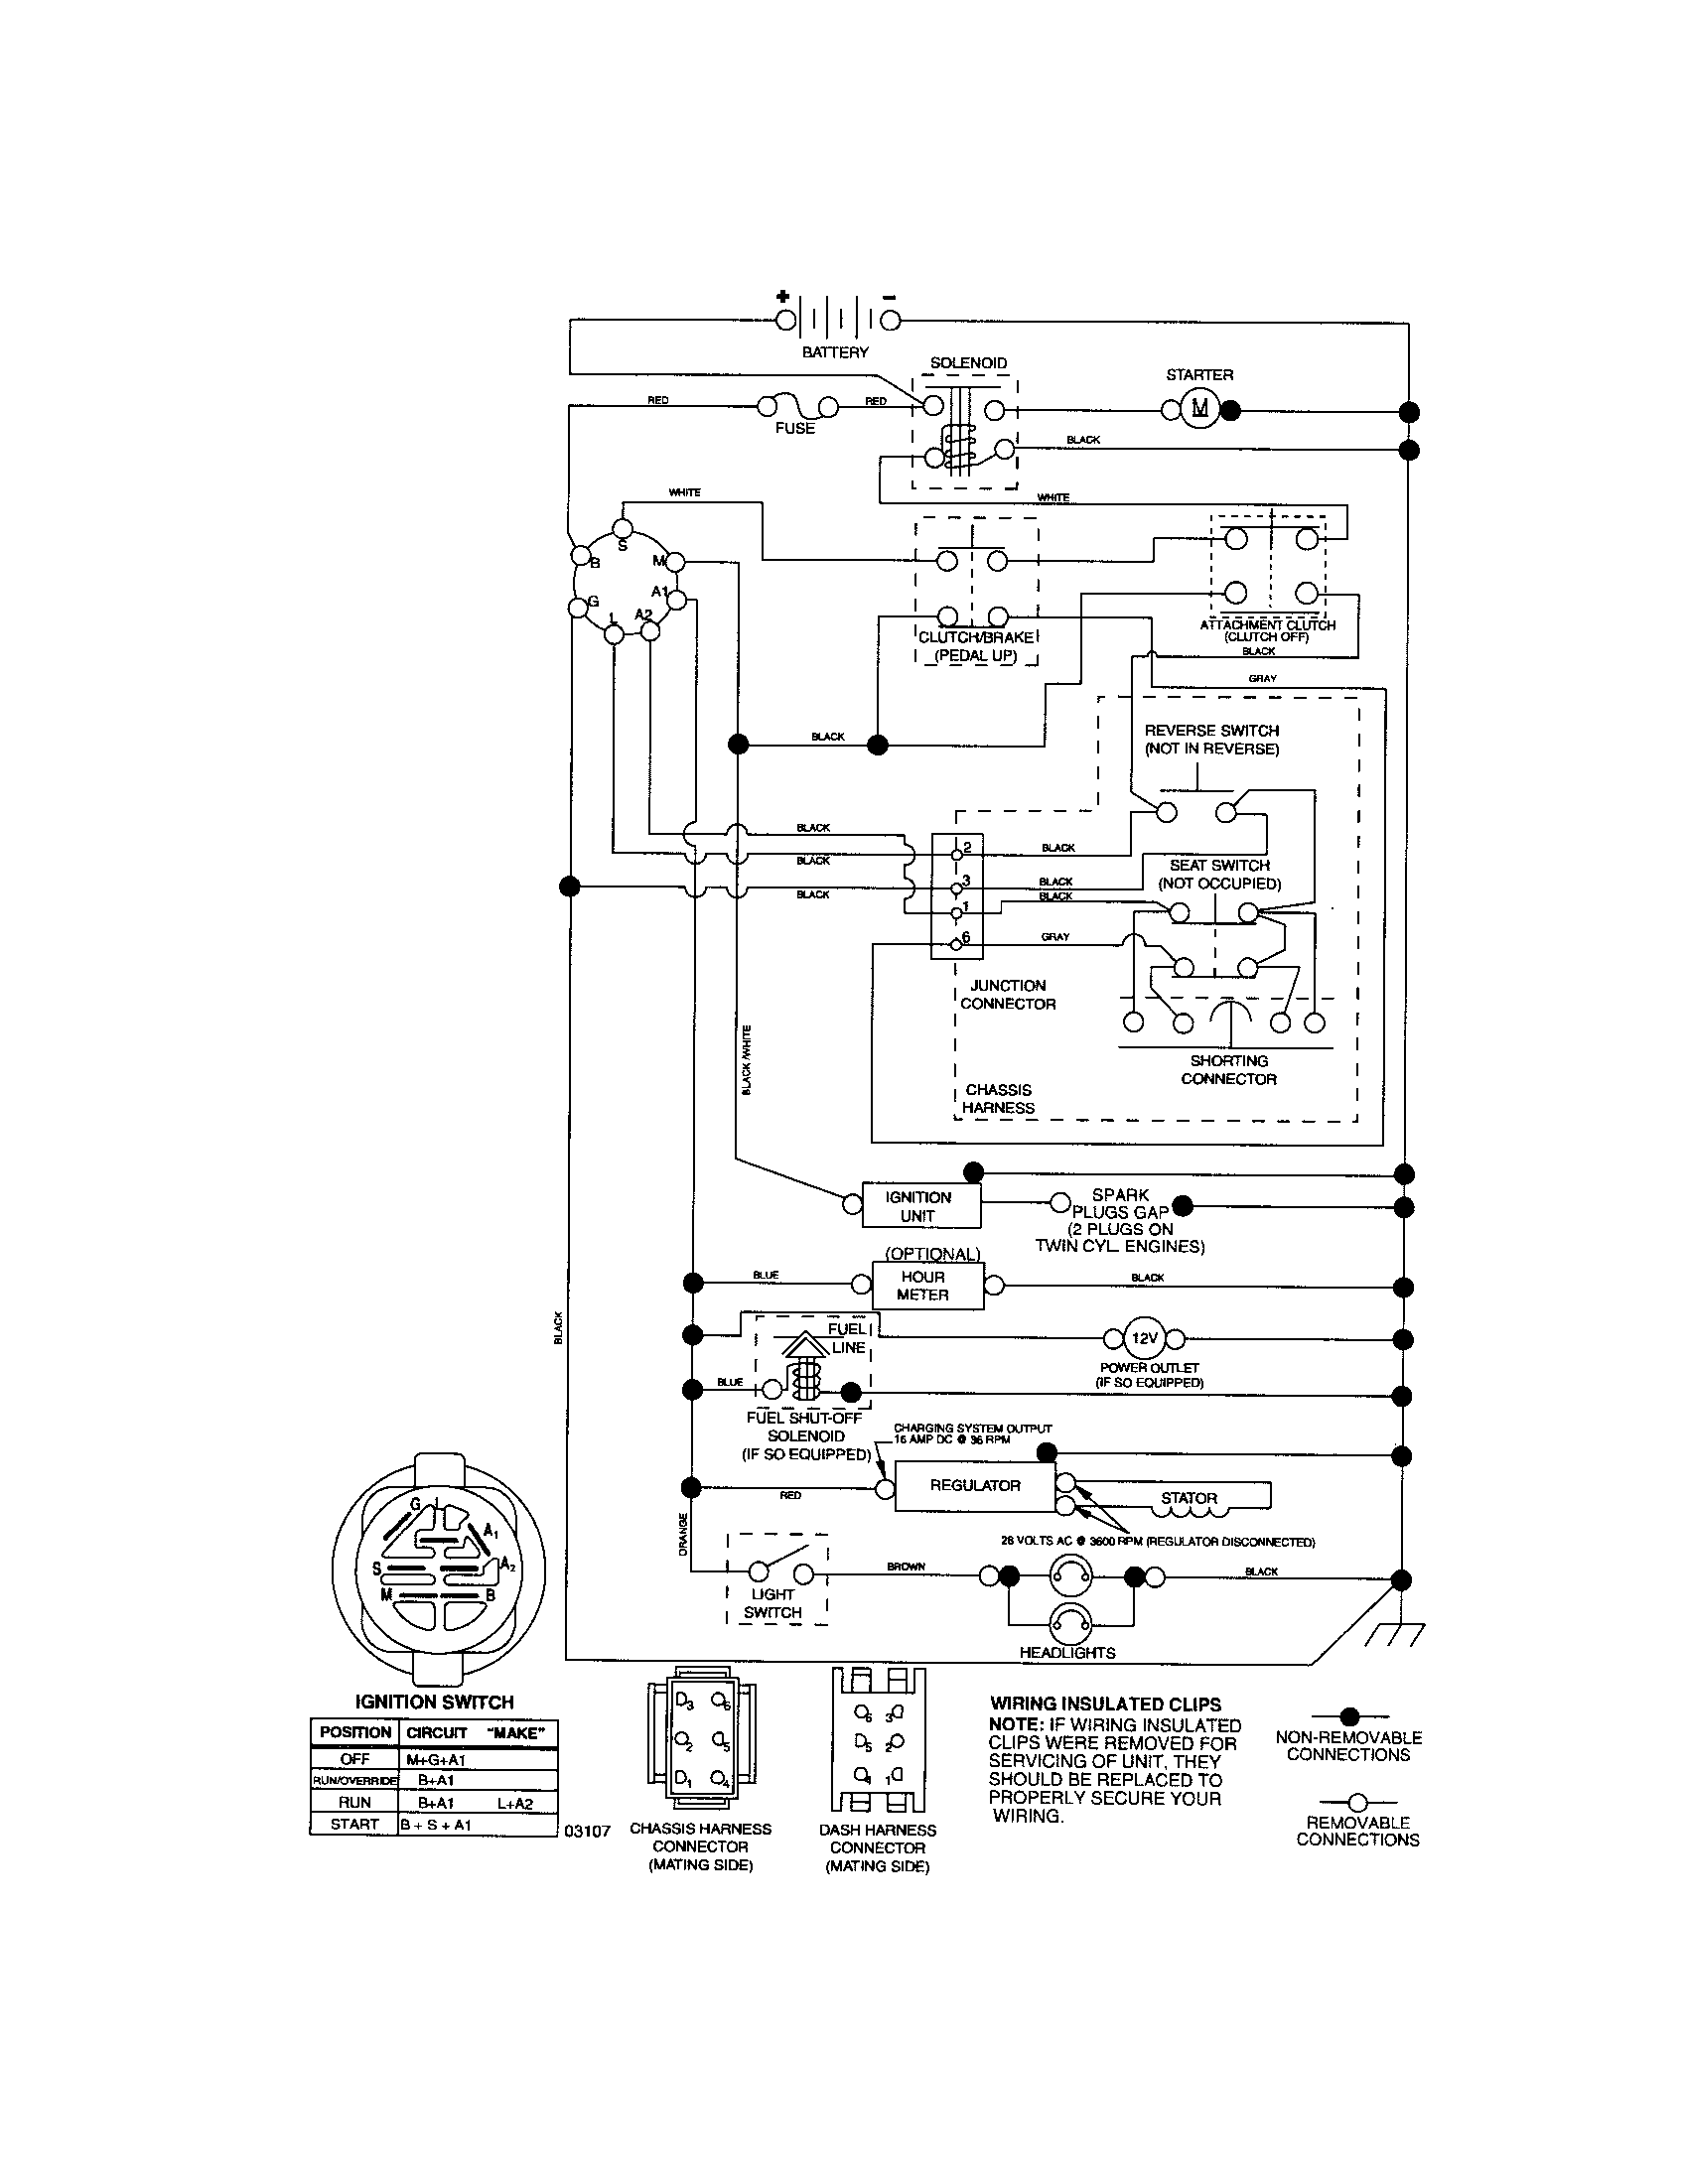 6af5f1447fd13c8443376822ddc1e105 craftsman riding mower electrical diagram wiring diagram briggs and stratton ignition coil wiring diagram at cita.asia